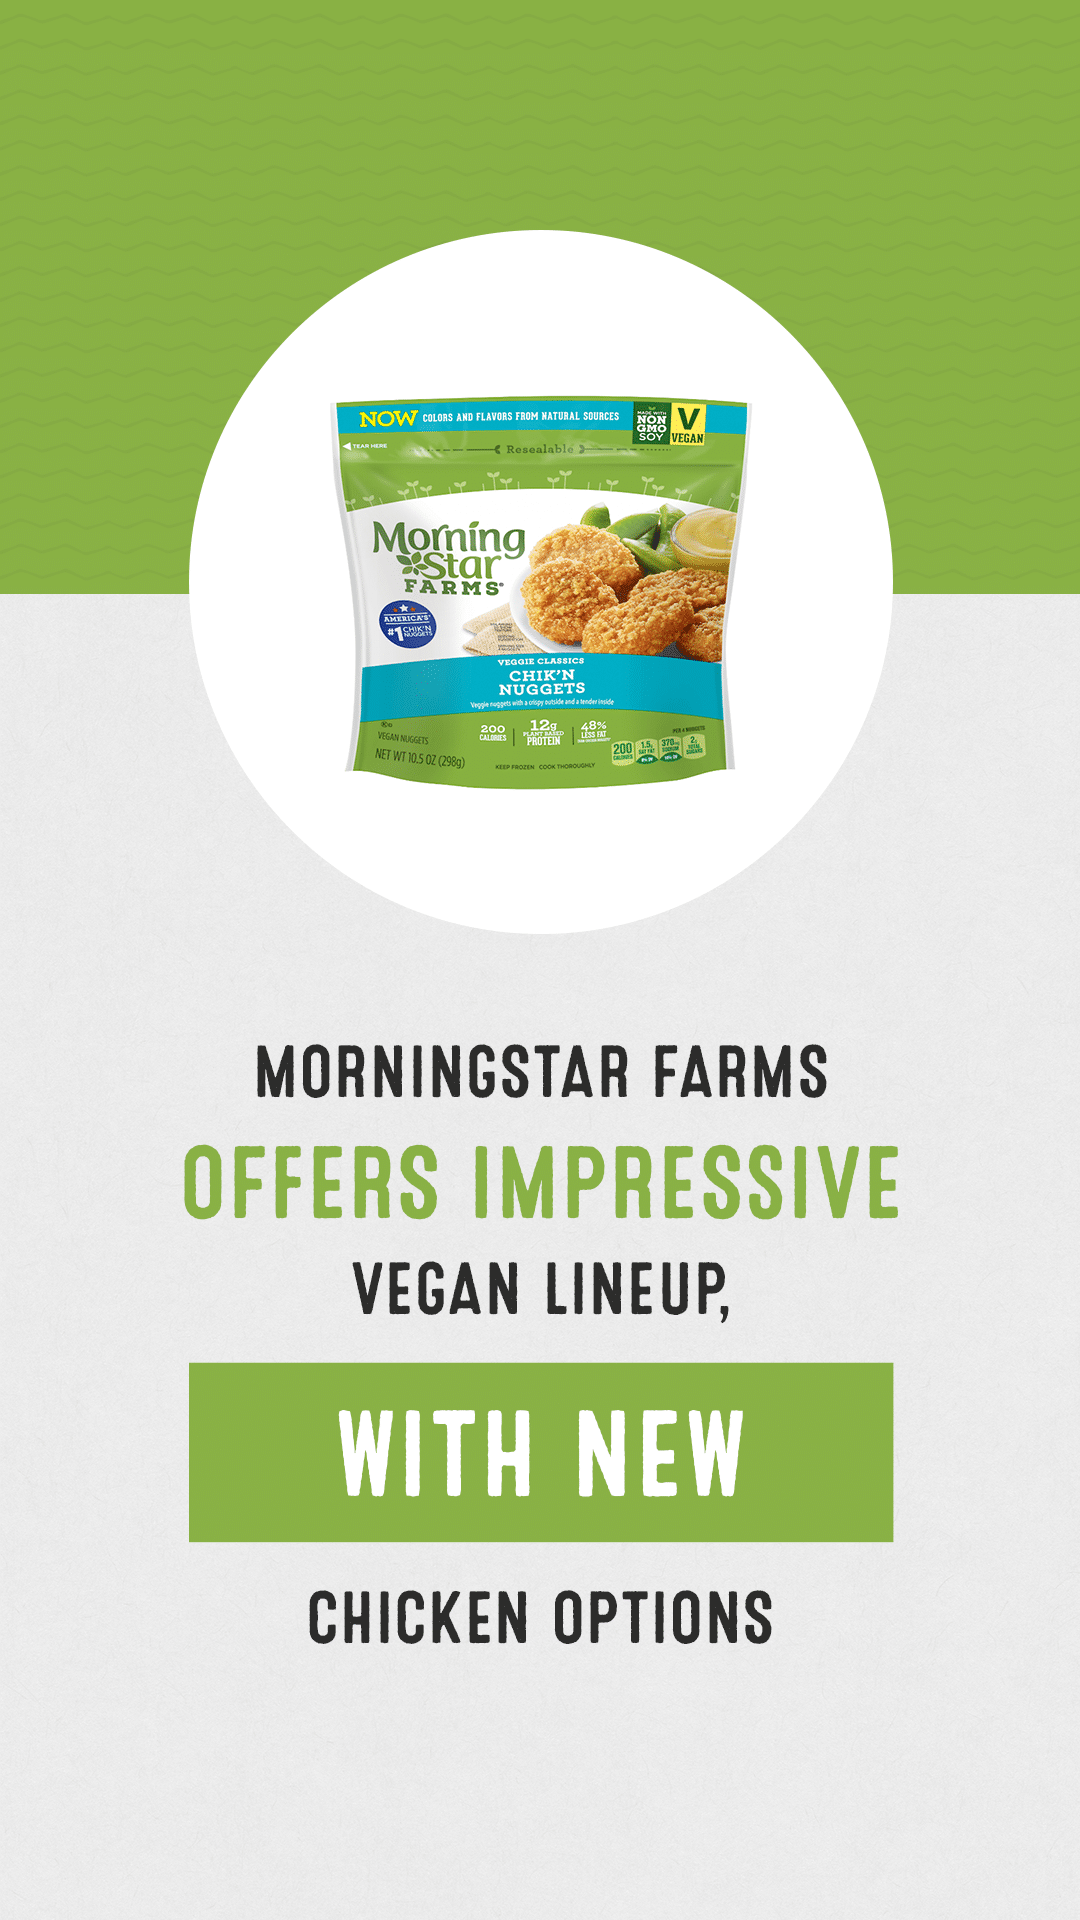 Morningstar Farms Offers Impressive Vegan Lineup, With New Chicken Options